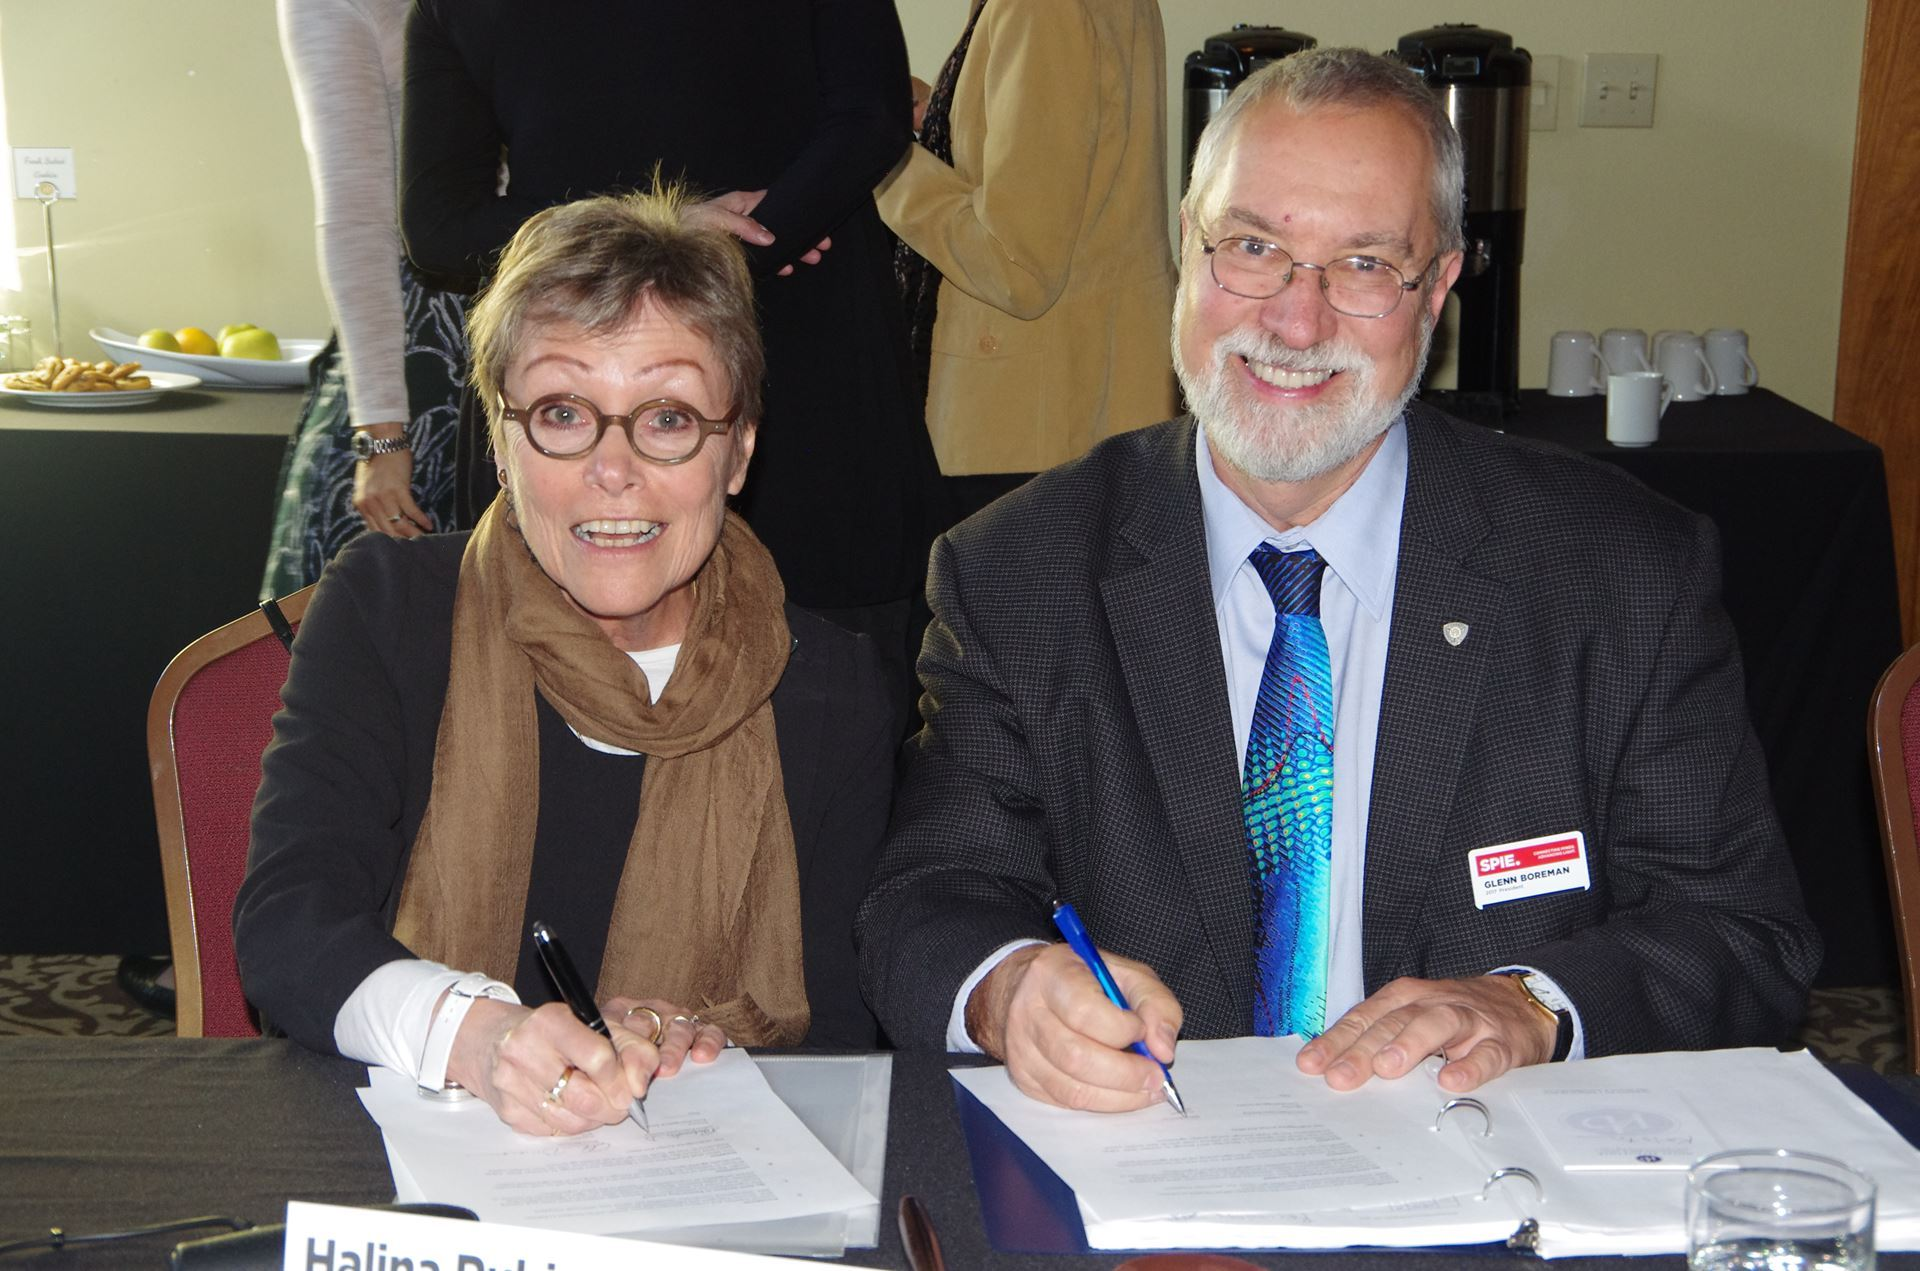 Halina Rubinsztein-Dunlop and Glenn Boreman sign AOS-SPIE MOU.